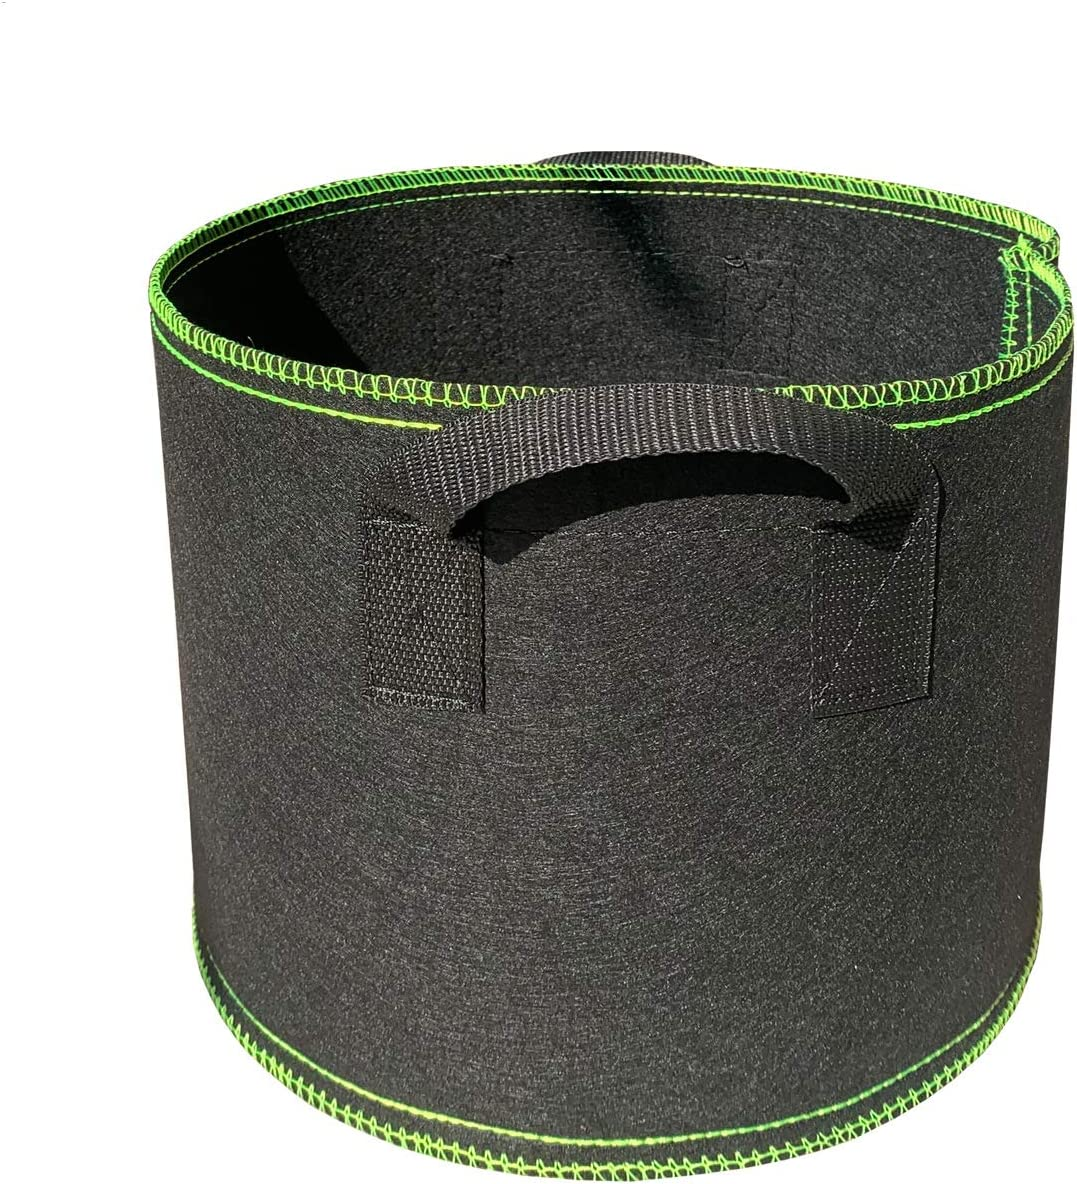 Growth Bag Container for Vegetables and Fruits Plant Pot 1 Callon x 1 Conpush 1 2 3 5 7 10 Gallon Plant Bag Heavy Container Thickened Non-woven Fabric with Handle and Planting